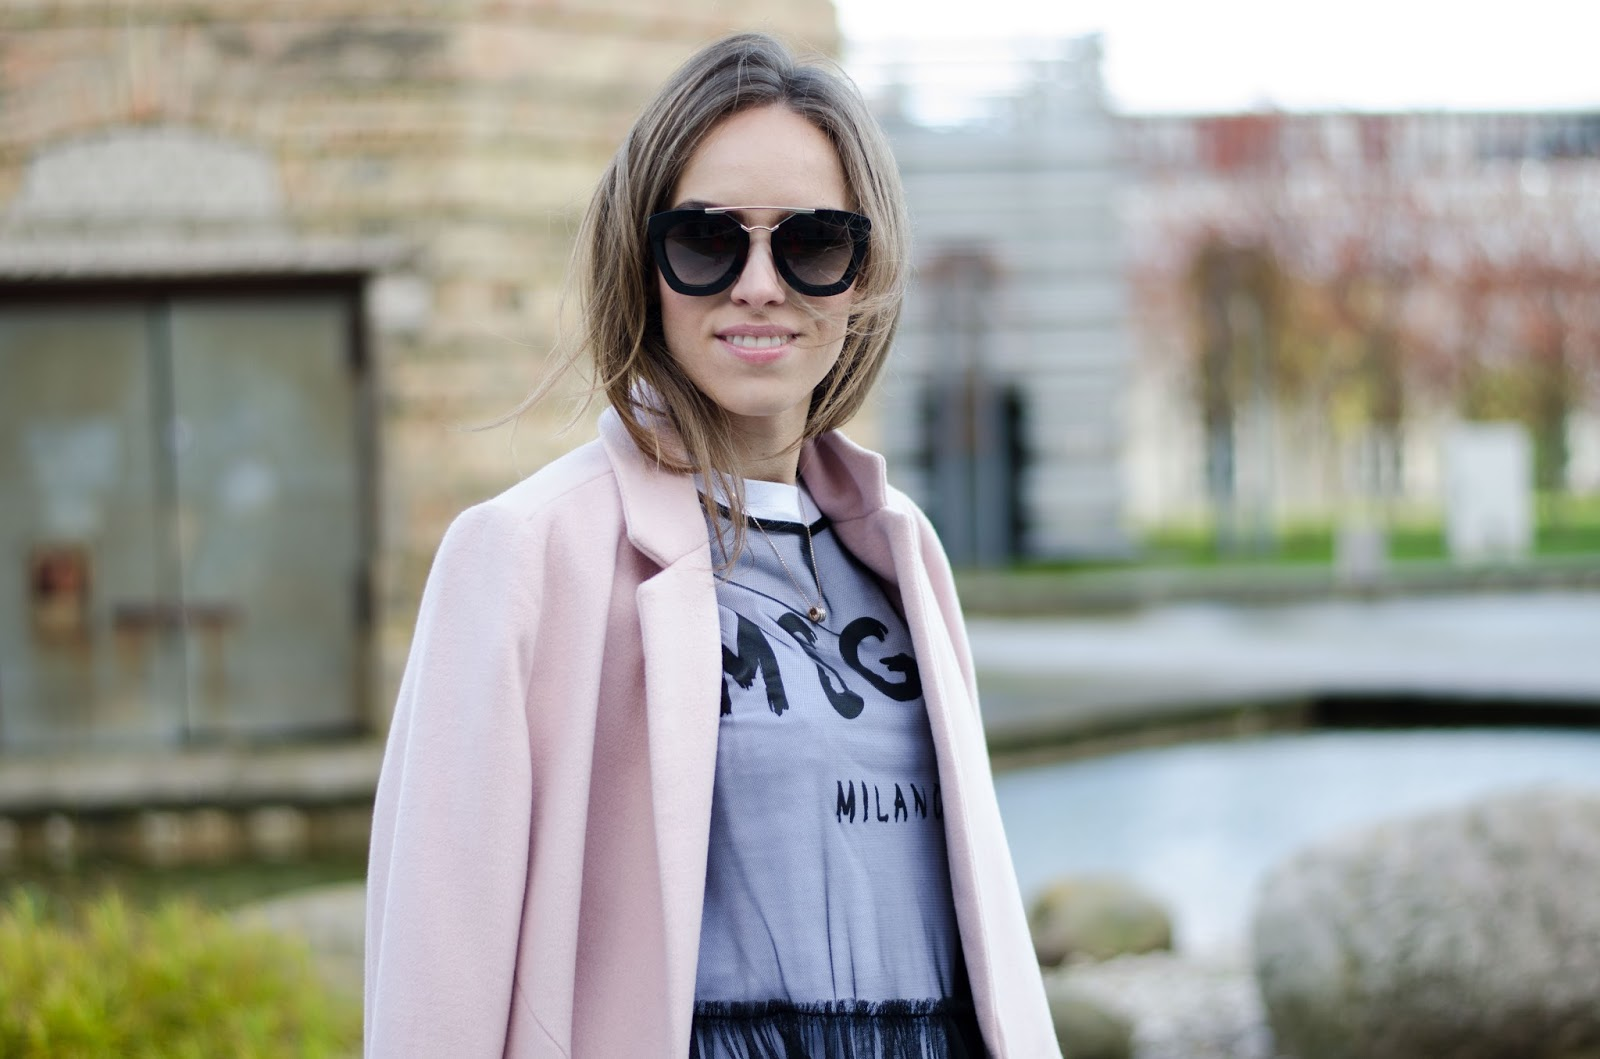 prada sunglasses fall outfit